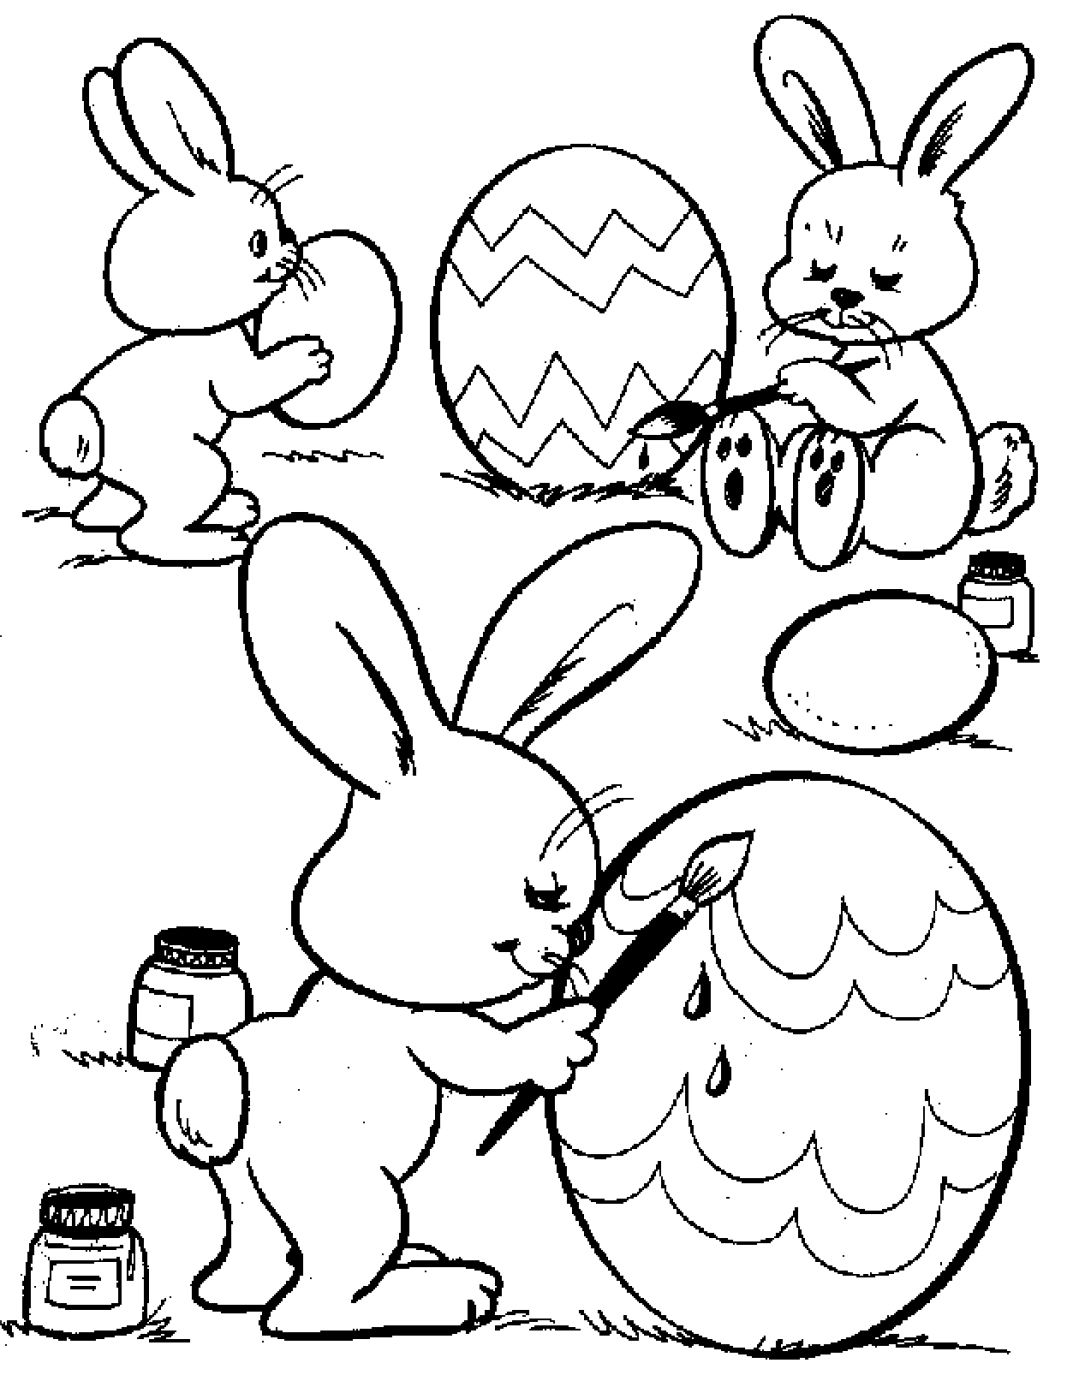 17 Best images about Ostern on Pinterest | Basteln, The back and ...